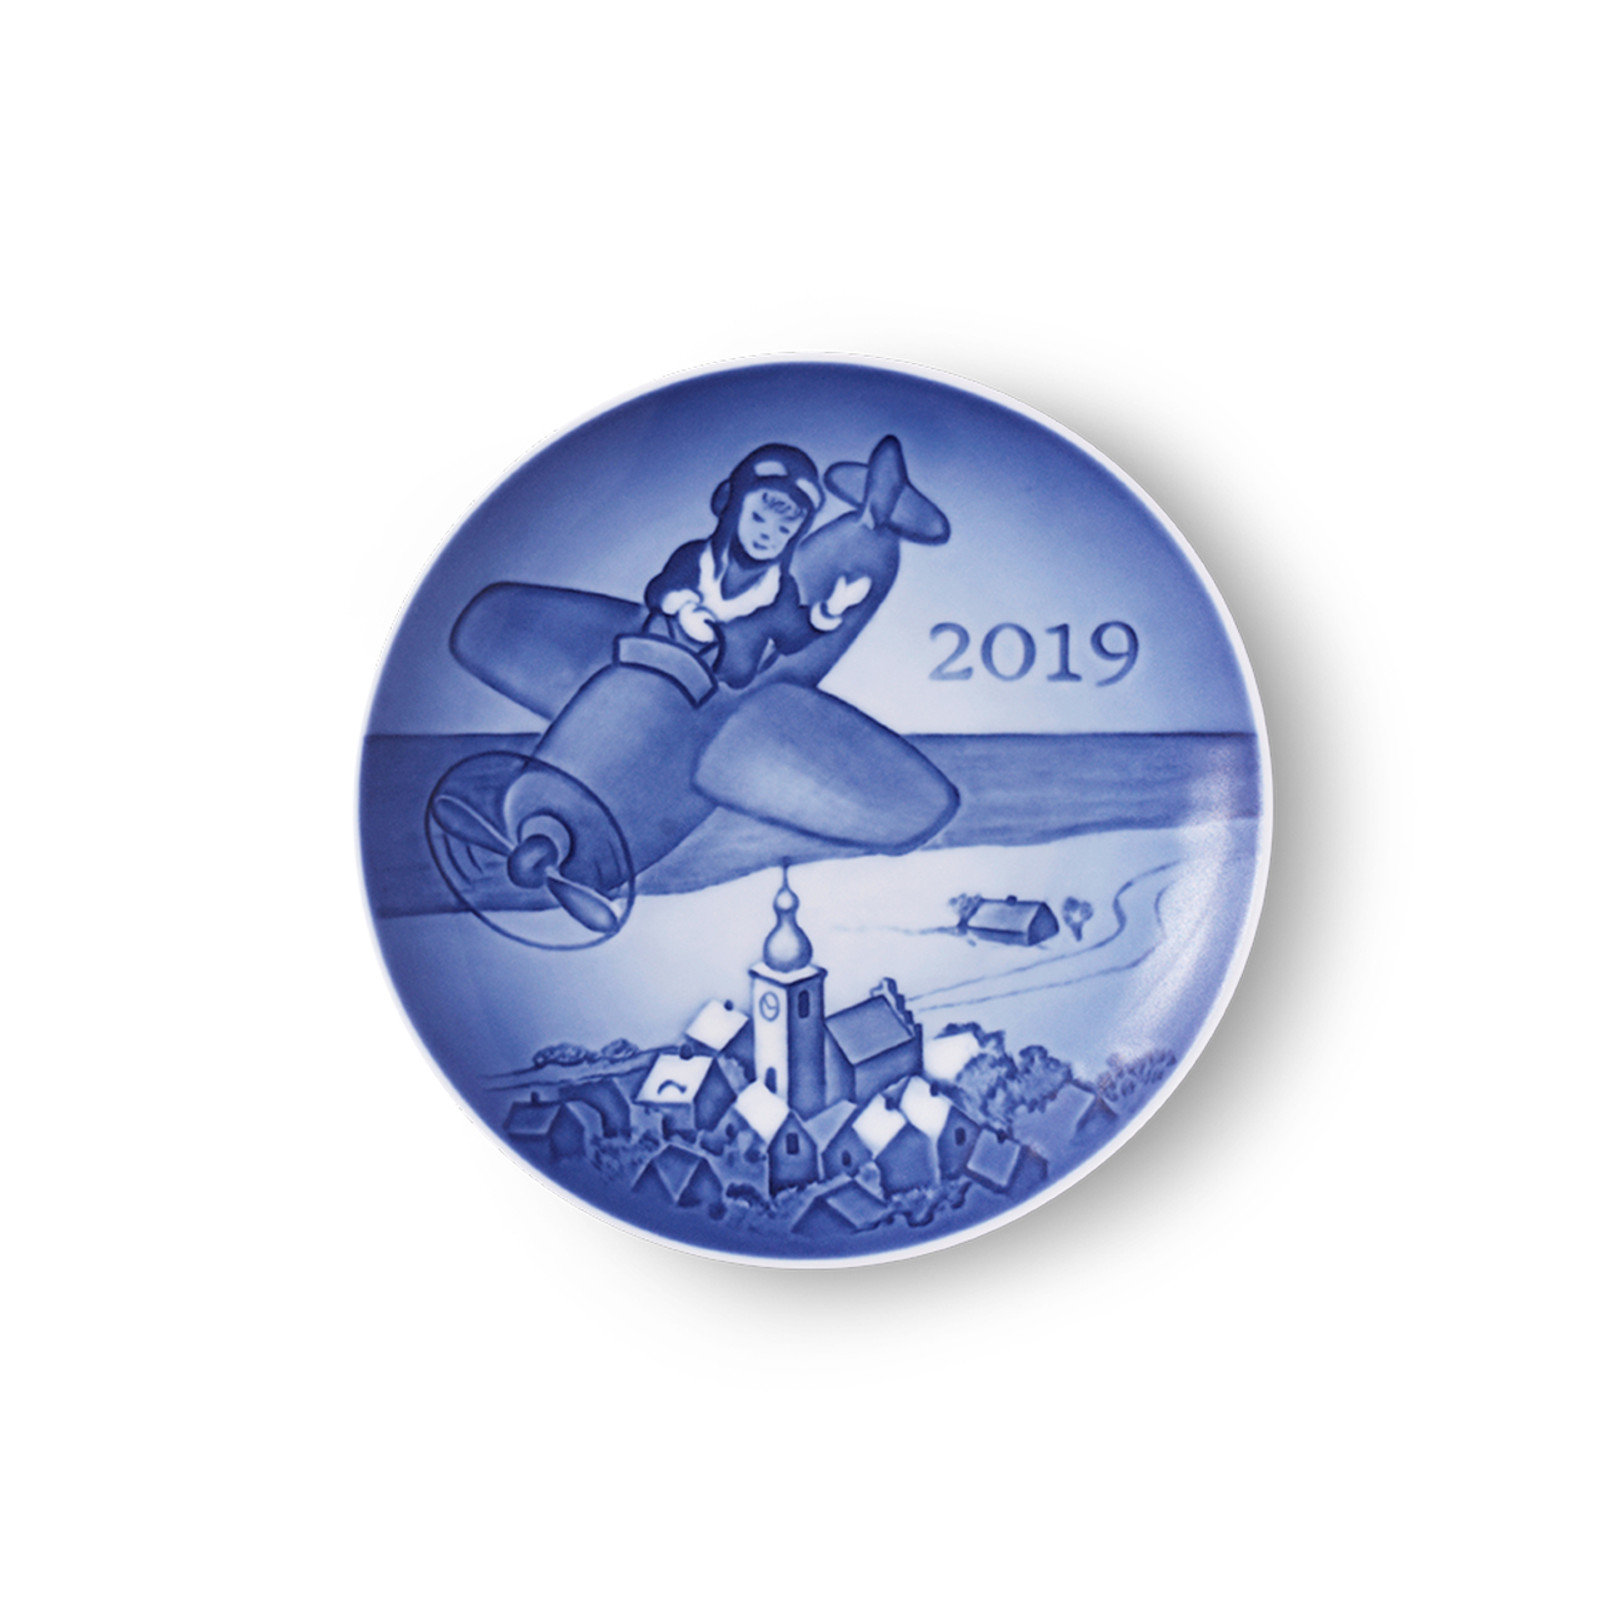 2019 Bing and Grondahl Children's Day Plate, available at The Nordic Shop.